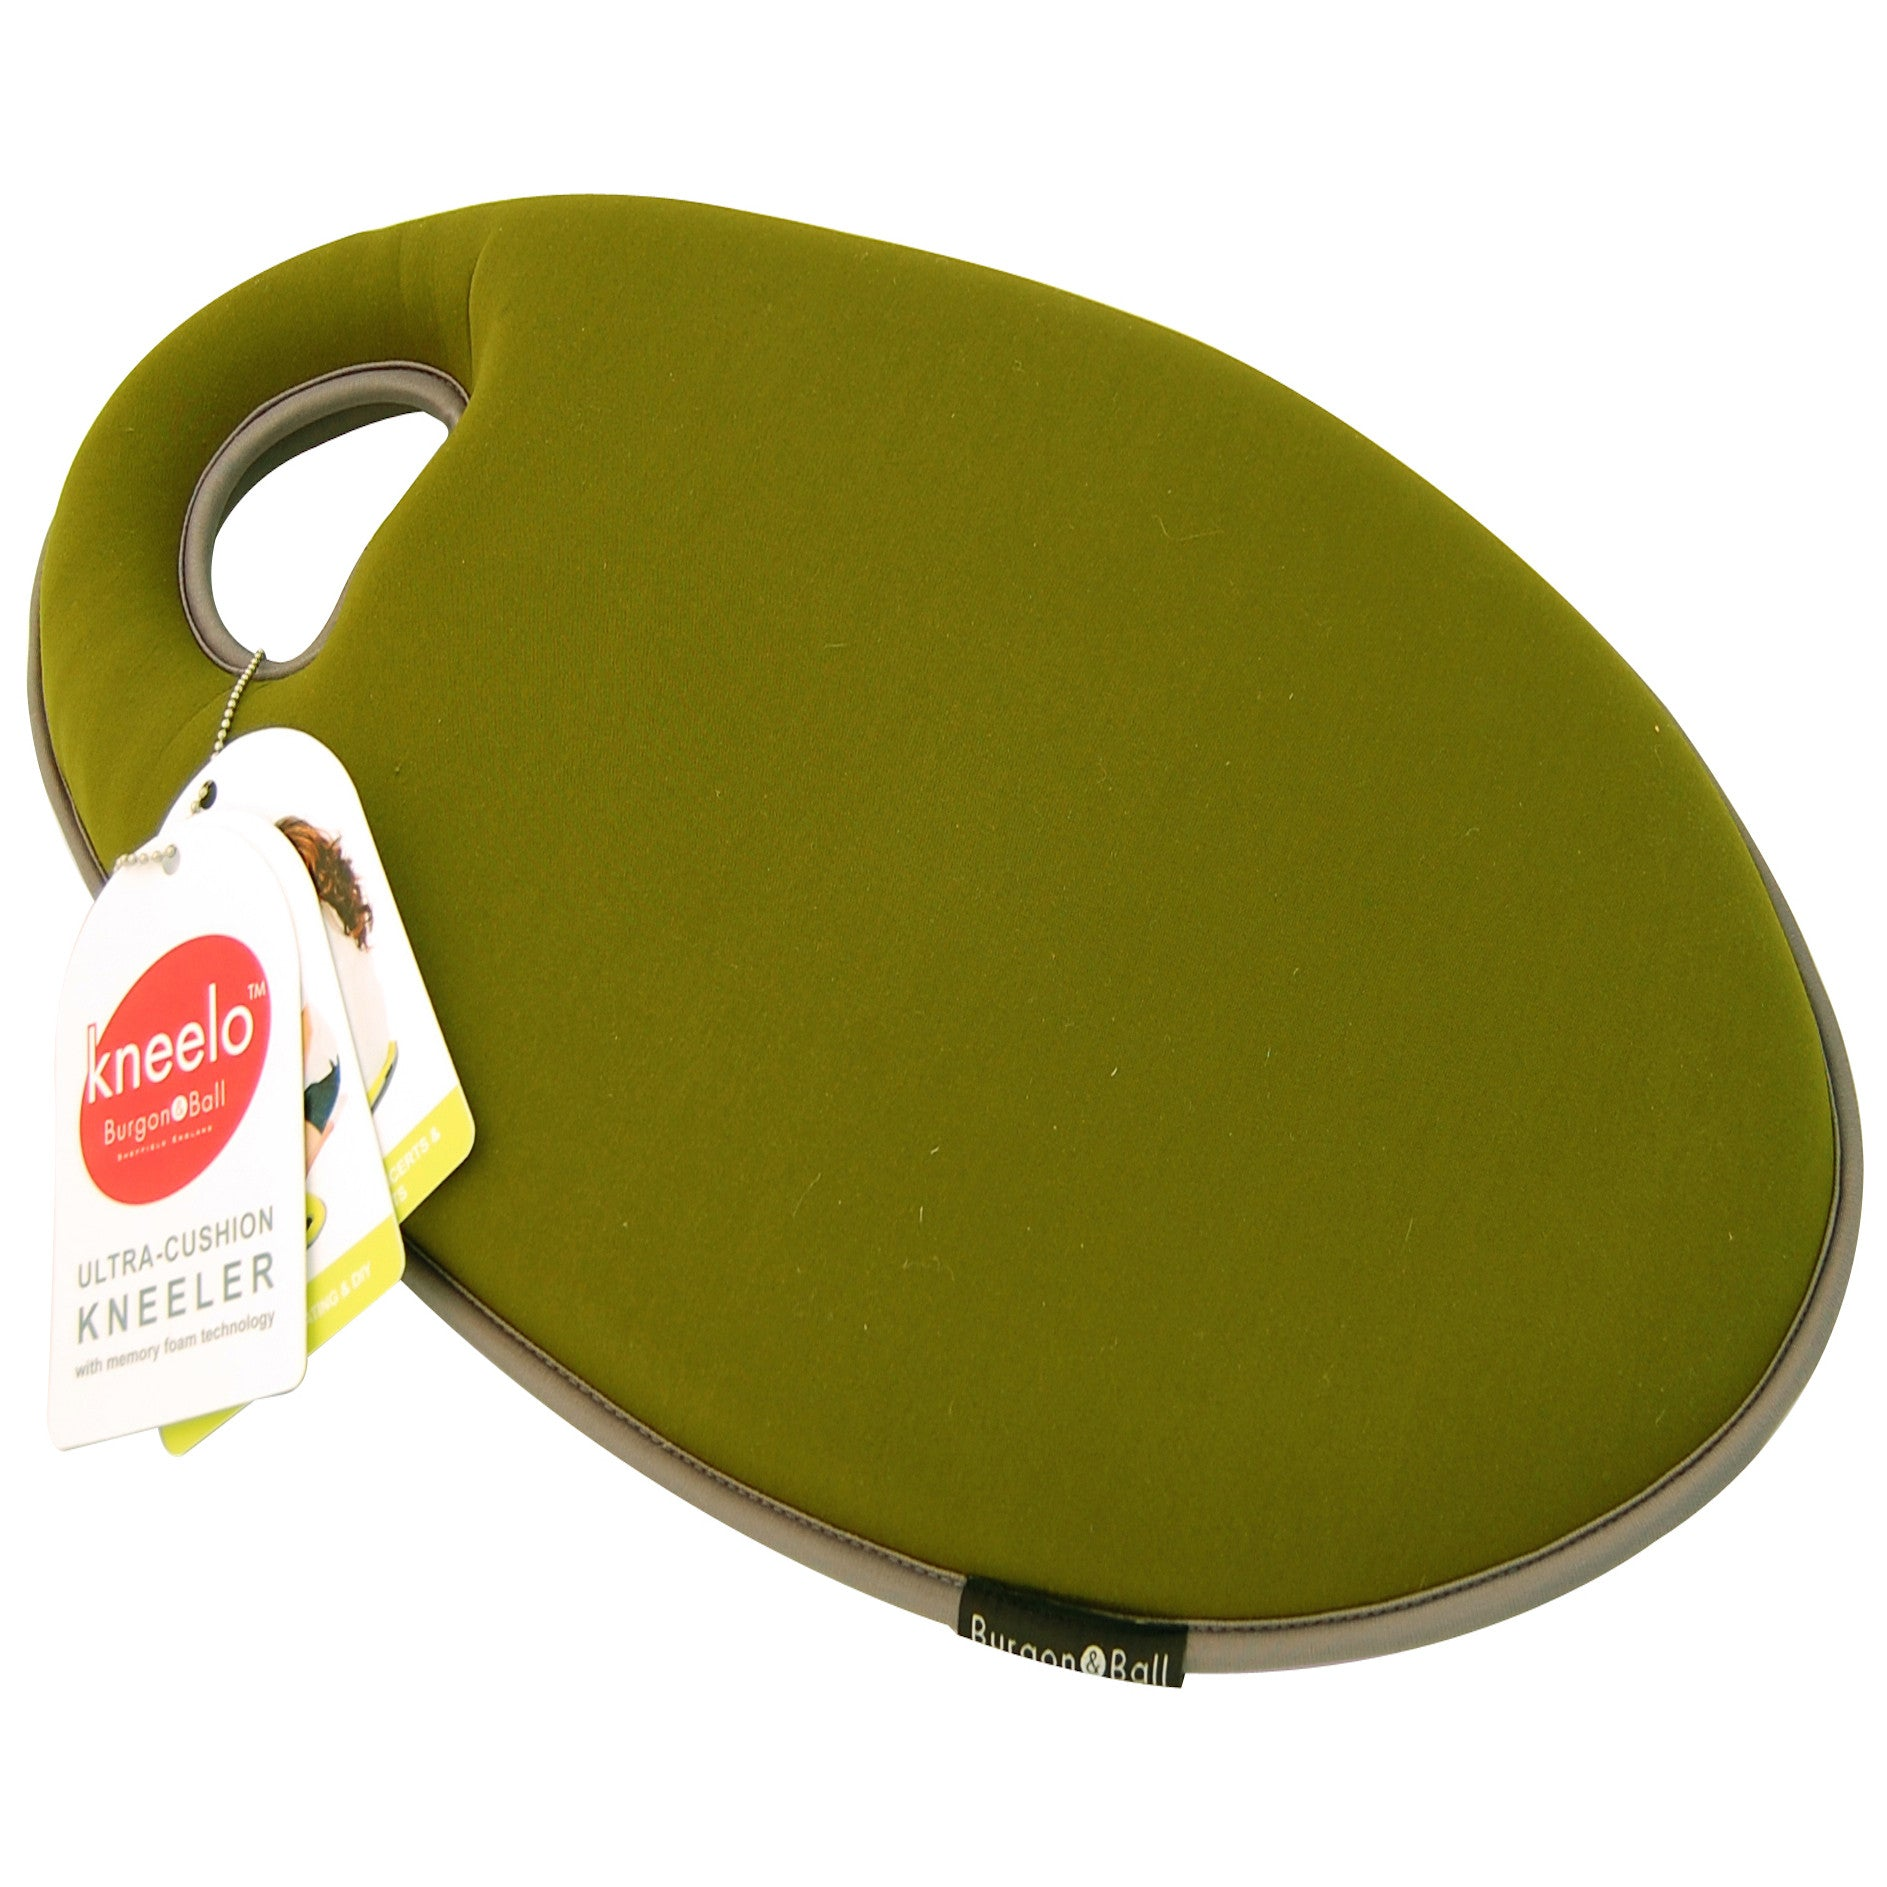 Kneelo® Kneeler - Moss - The Potting Shed Garden Tools